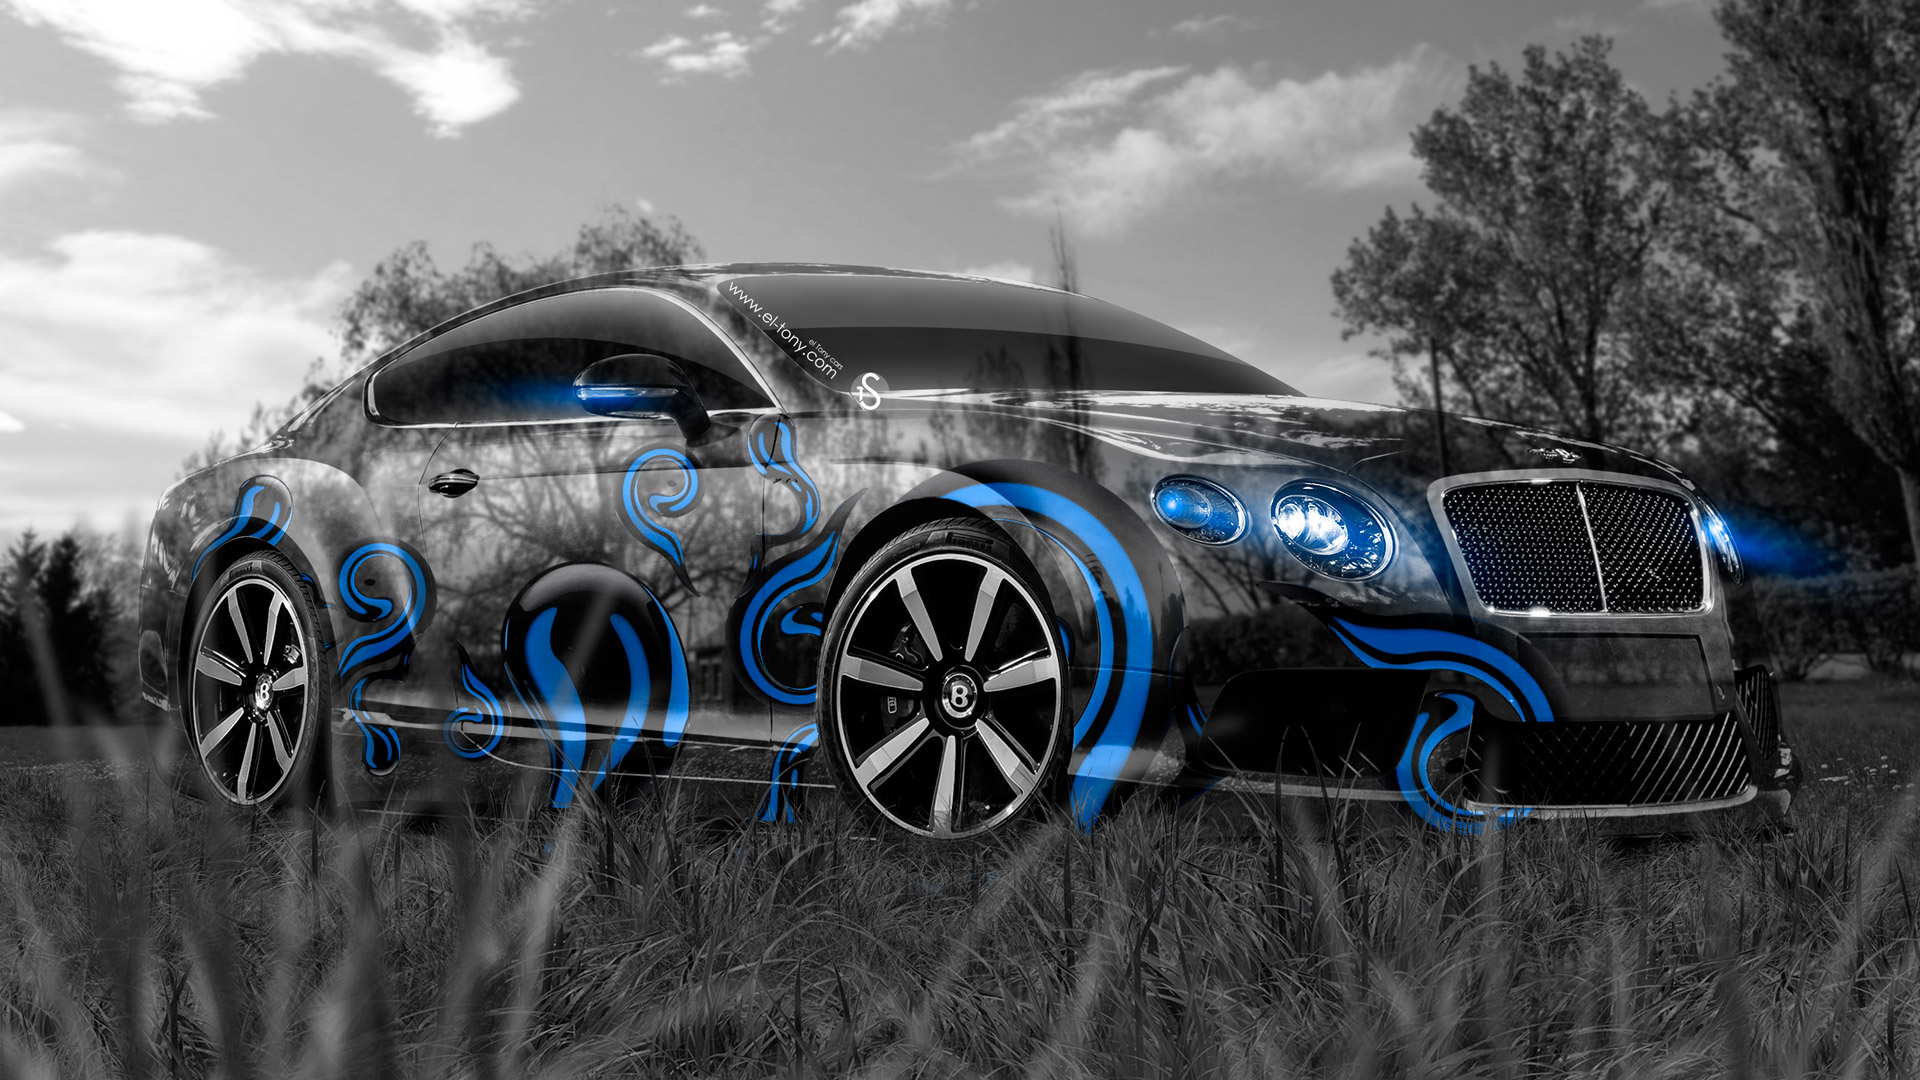 Bentley Continental Gt Crystal Nature Car Art Neon Blue Effects Hd Wallpapers Design By Tony Kokhan   El Tony on 2017 dodge viper